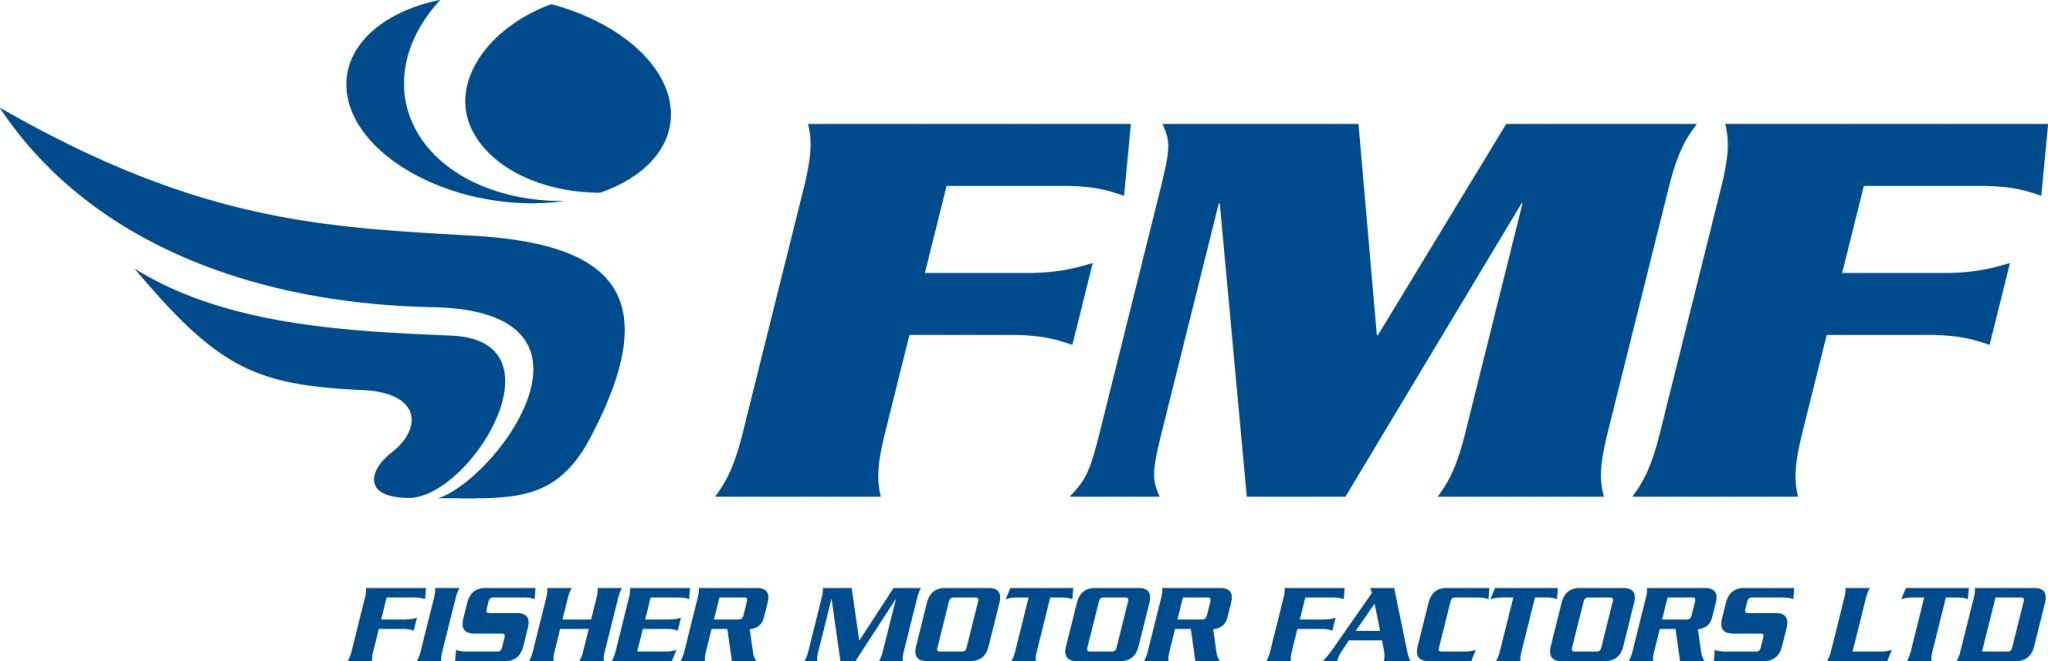 Fisher Motor Factors